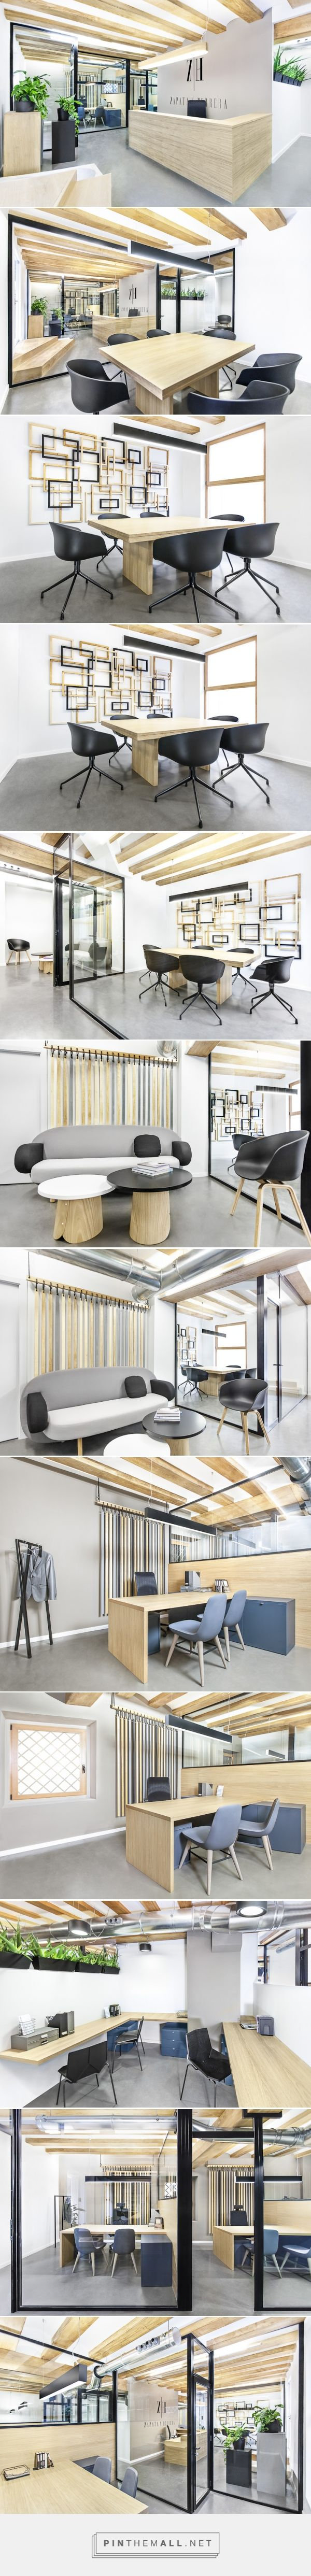 law office design ideas commercial office. Zapata \u0026 Herrera Law Firm Office Design - Interior By Masquespacio Ideas Commercial